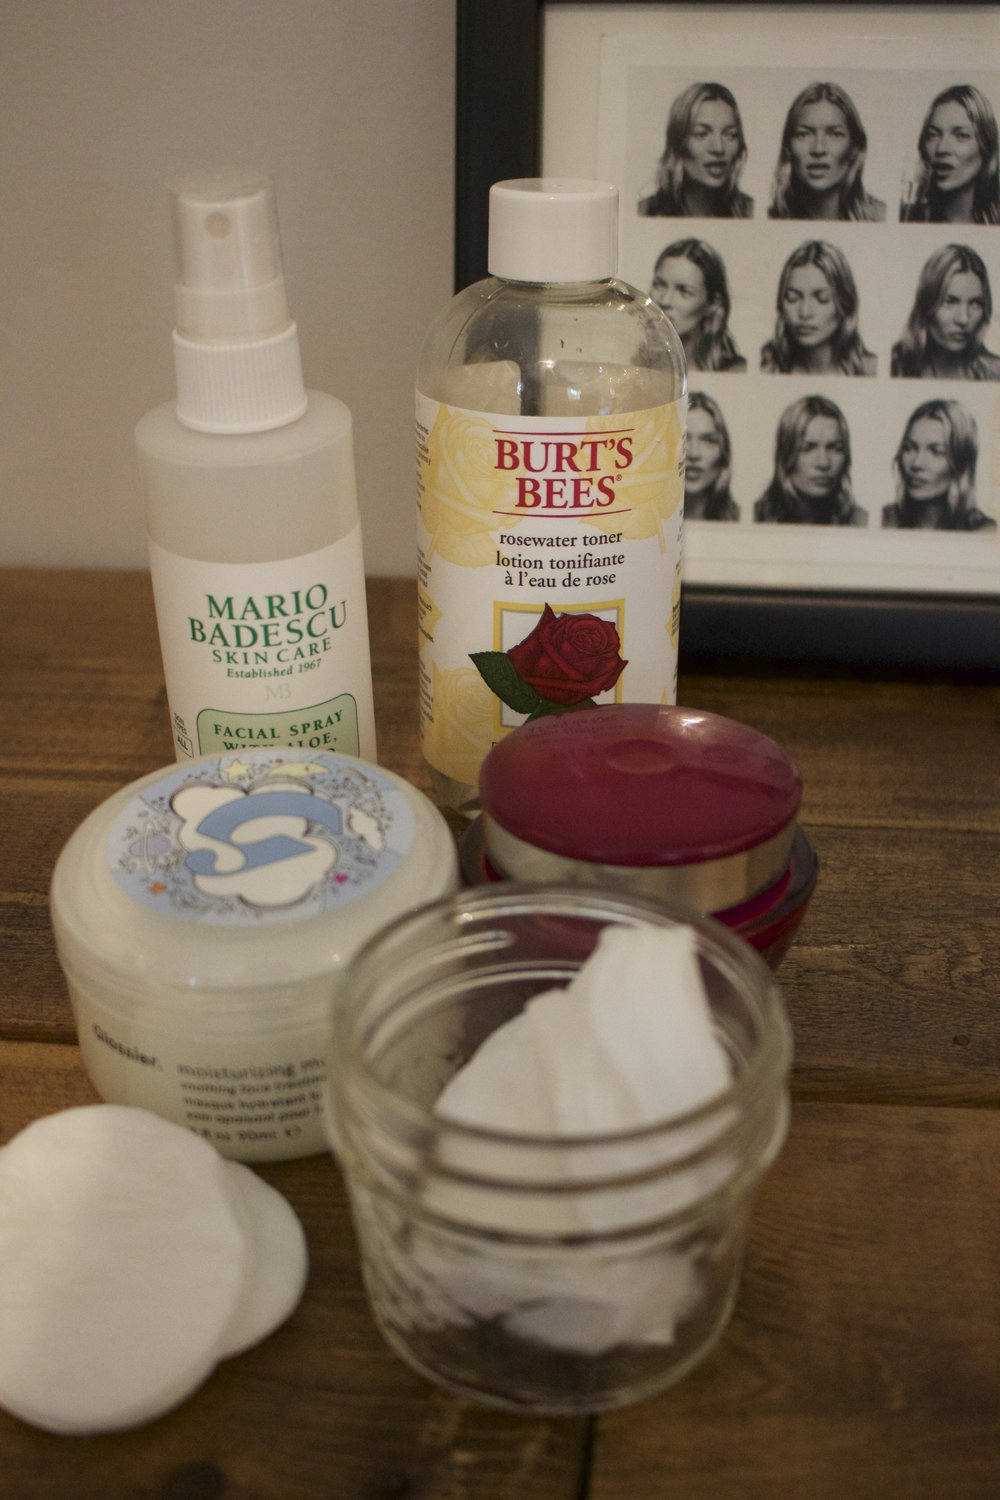 My night time essentials after I remove my makeup are a toner, facial mist and night cream (a weekly face mask too!)